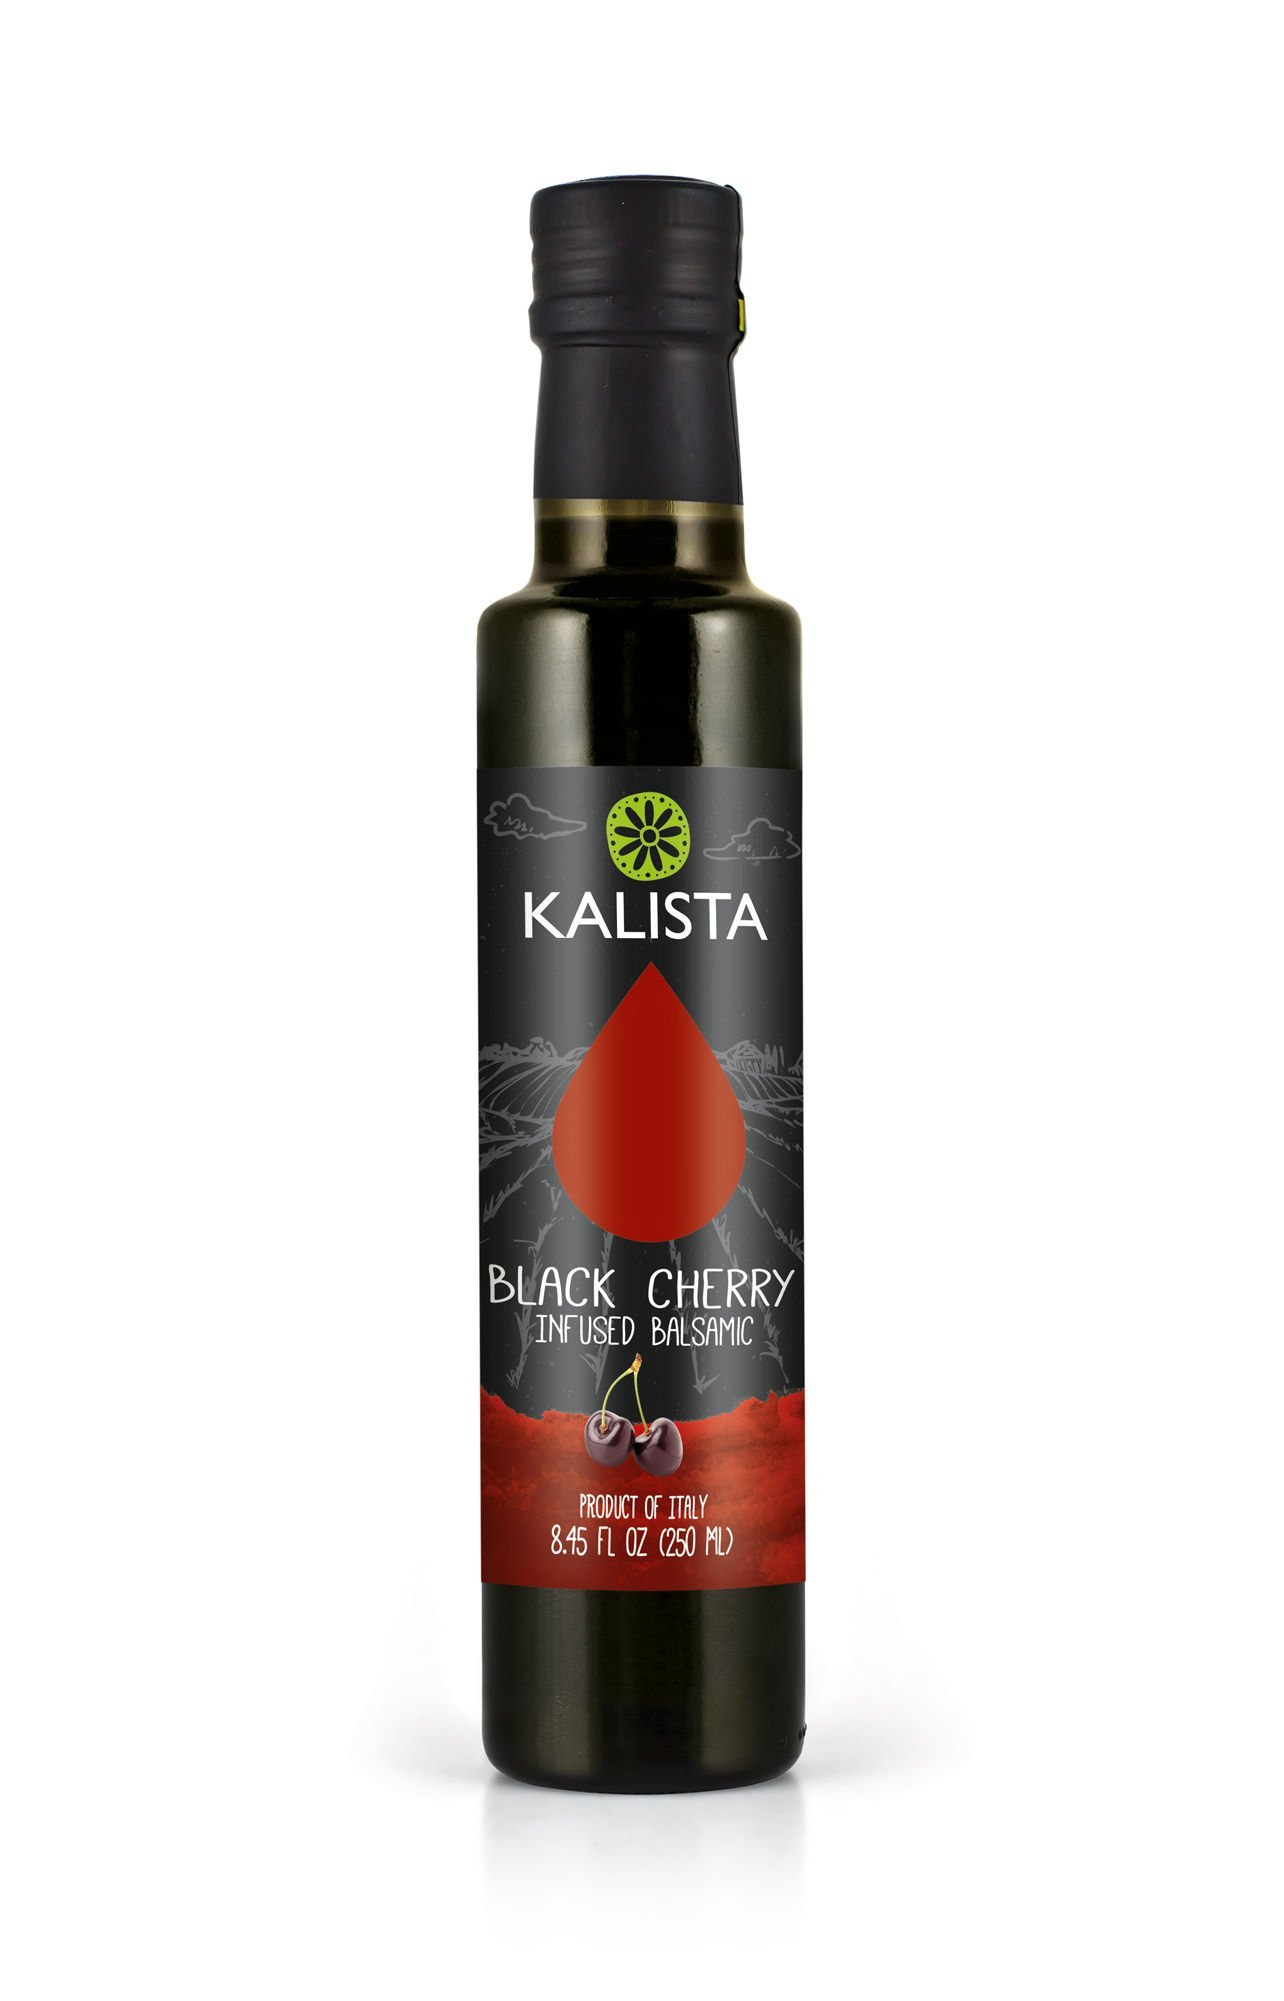 Kalista Black Cherry Balsamic Vinegar, Black Cherry Balsamic, 8.45 Fluid Ounce 1 No Added Sugars Pairs perfectly with Kalista Extra Virgin Olive Oil & Kalista Lemon Olive Oil Great to use for finishing dishes, cheeses, salads, vegetables, ice cream & plain yogurt